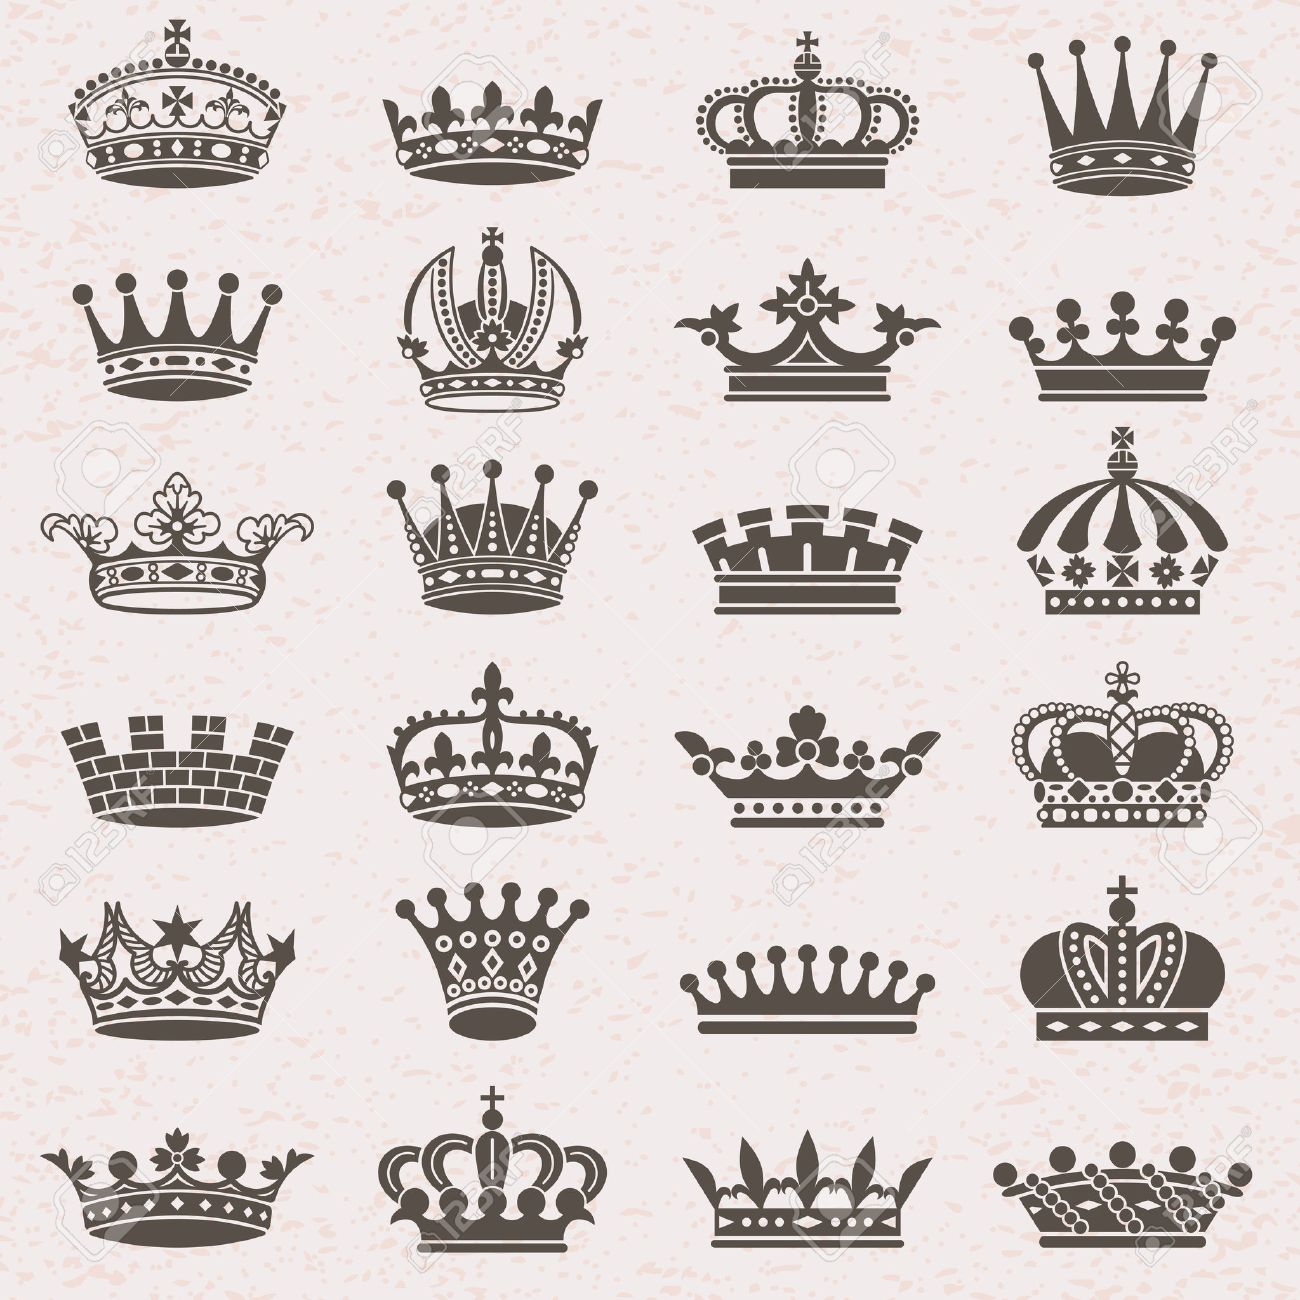 Set of crown heraldic silhouette icons - 52582844